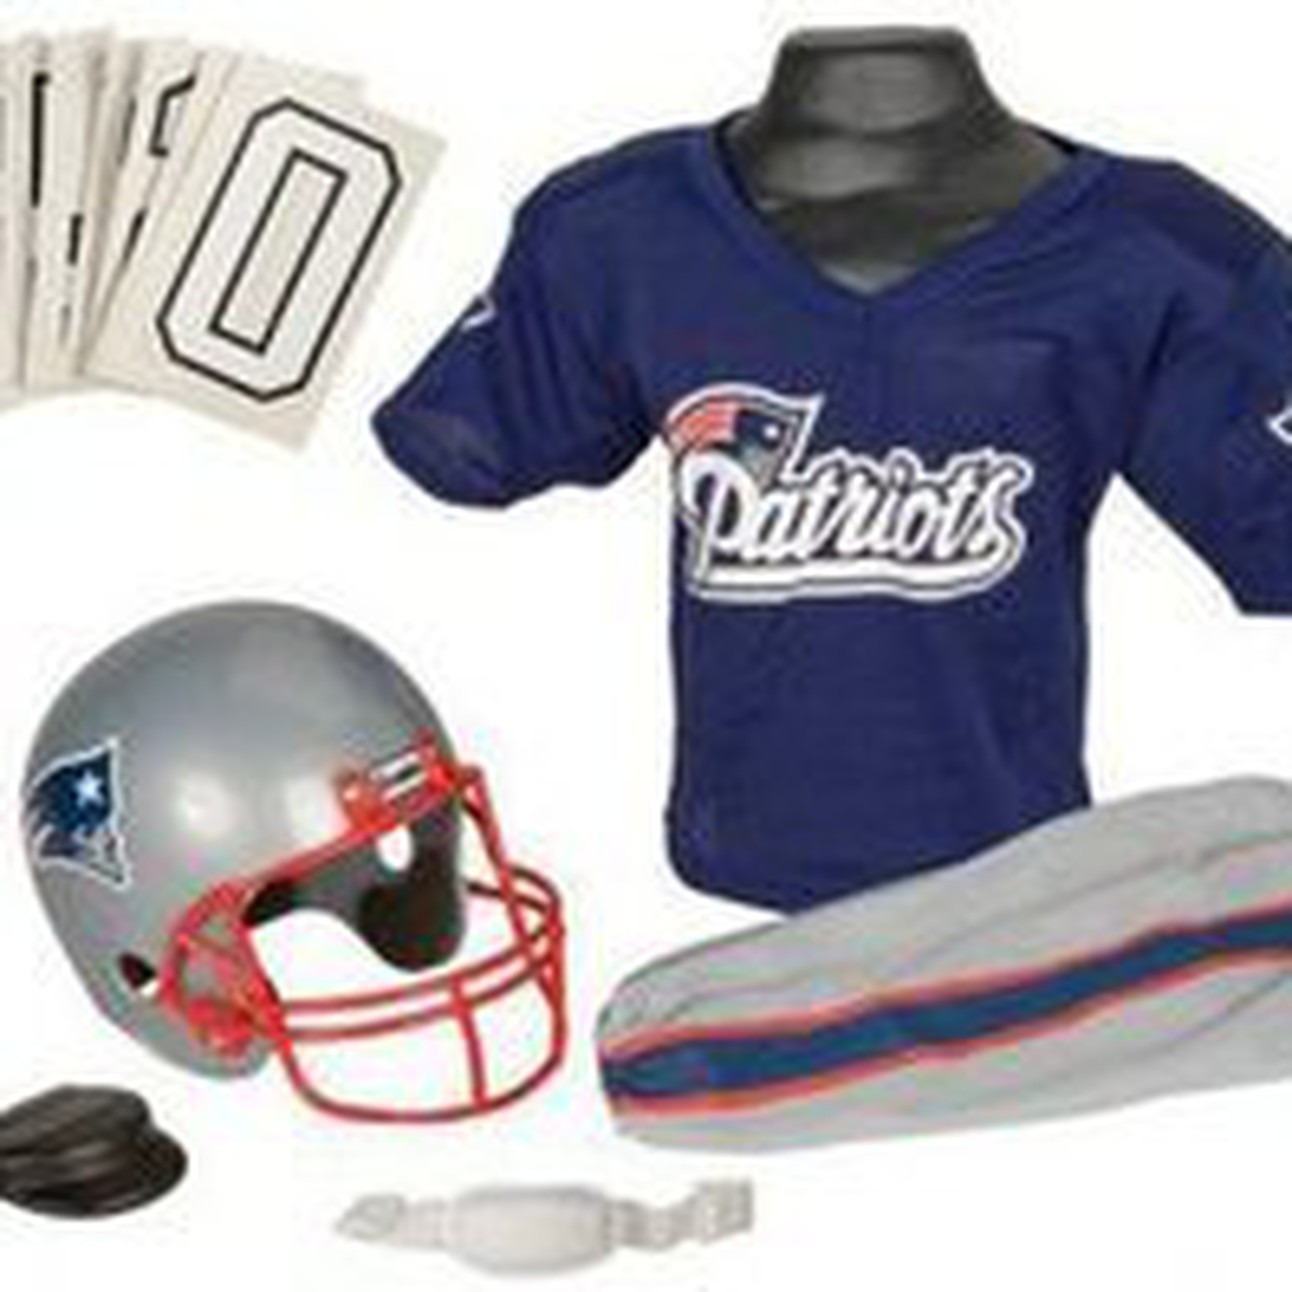 fcbcfd87 New England Patriots Franklin Deluxe Youth / Kids Football Uniform ...